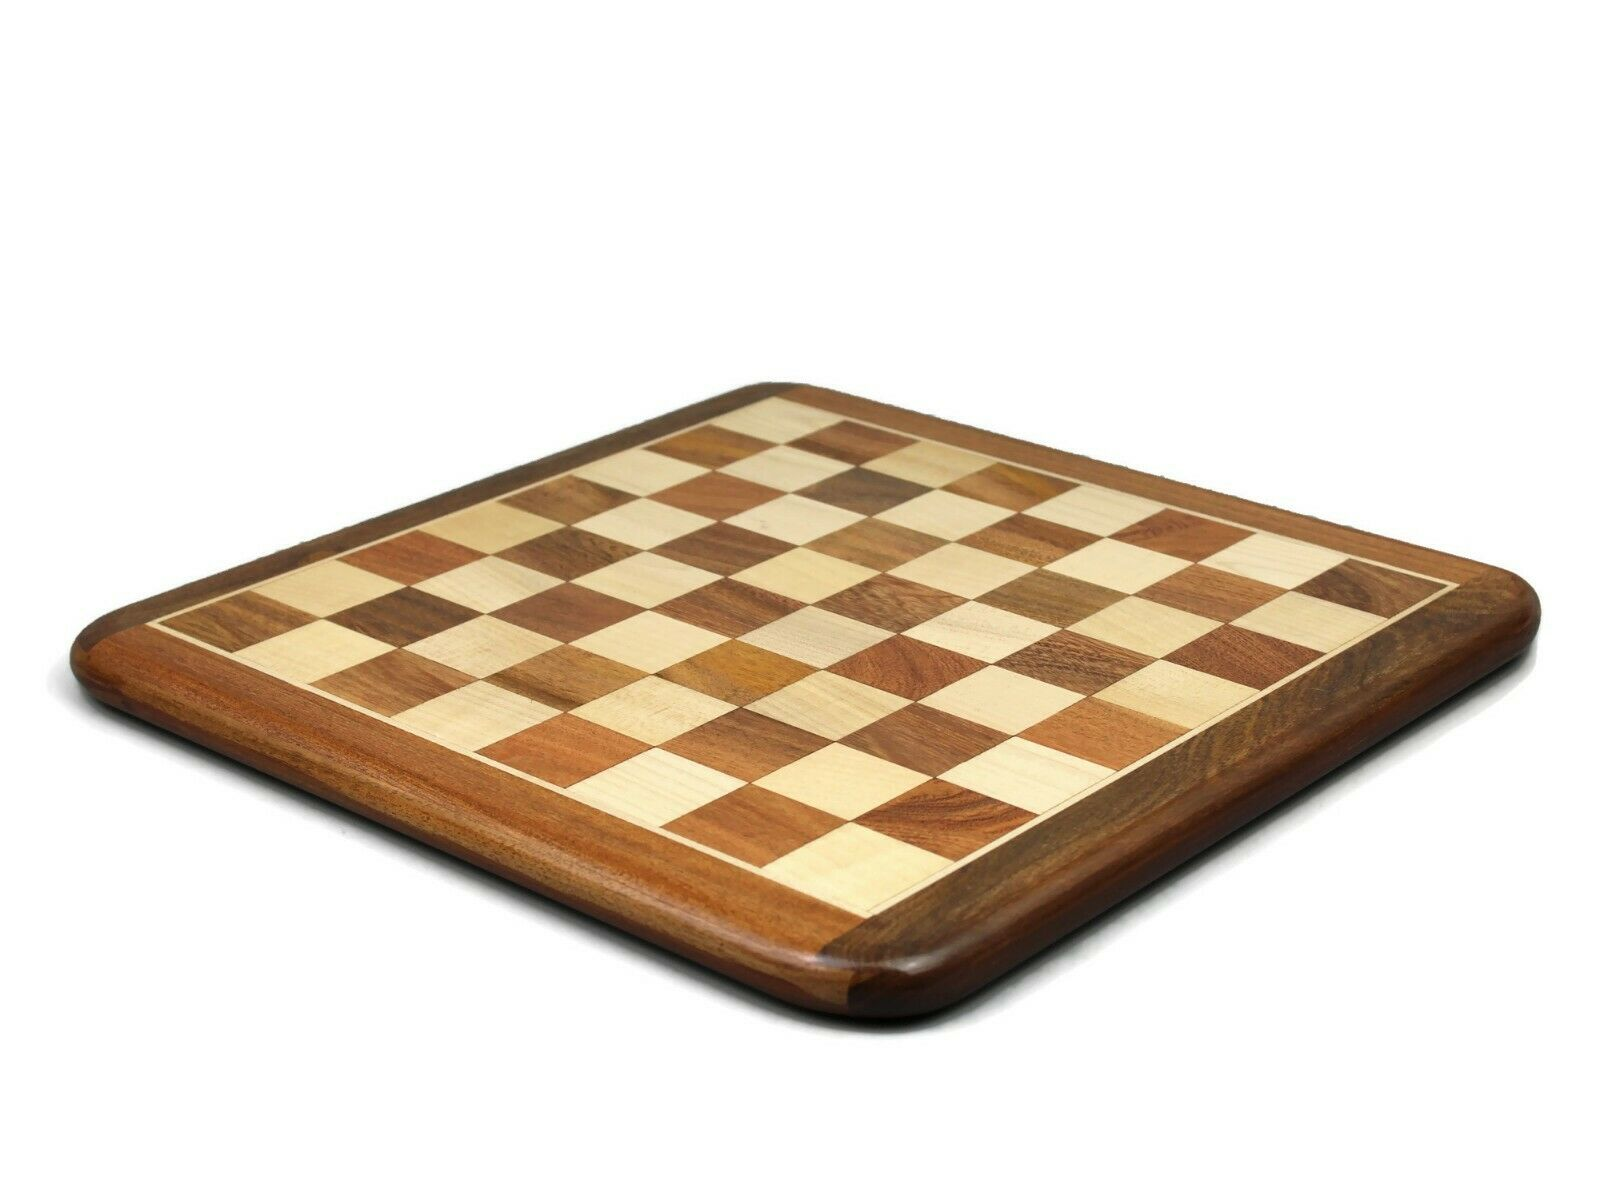 """CHESS SET SOLID SHEESHAM WOOD CARVED INLAID BOARD GAME BRAND NEW 20/"""""""